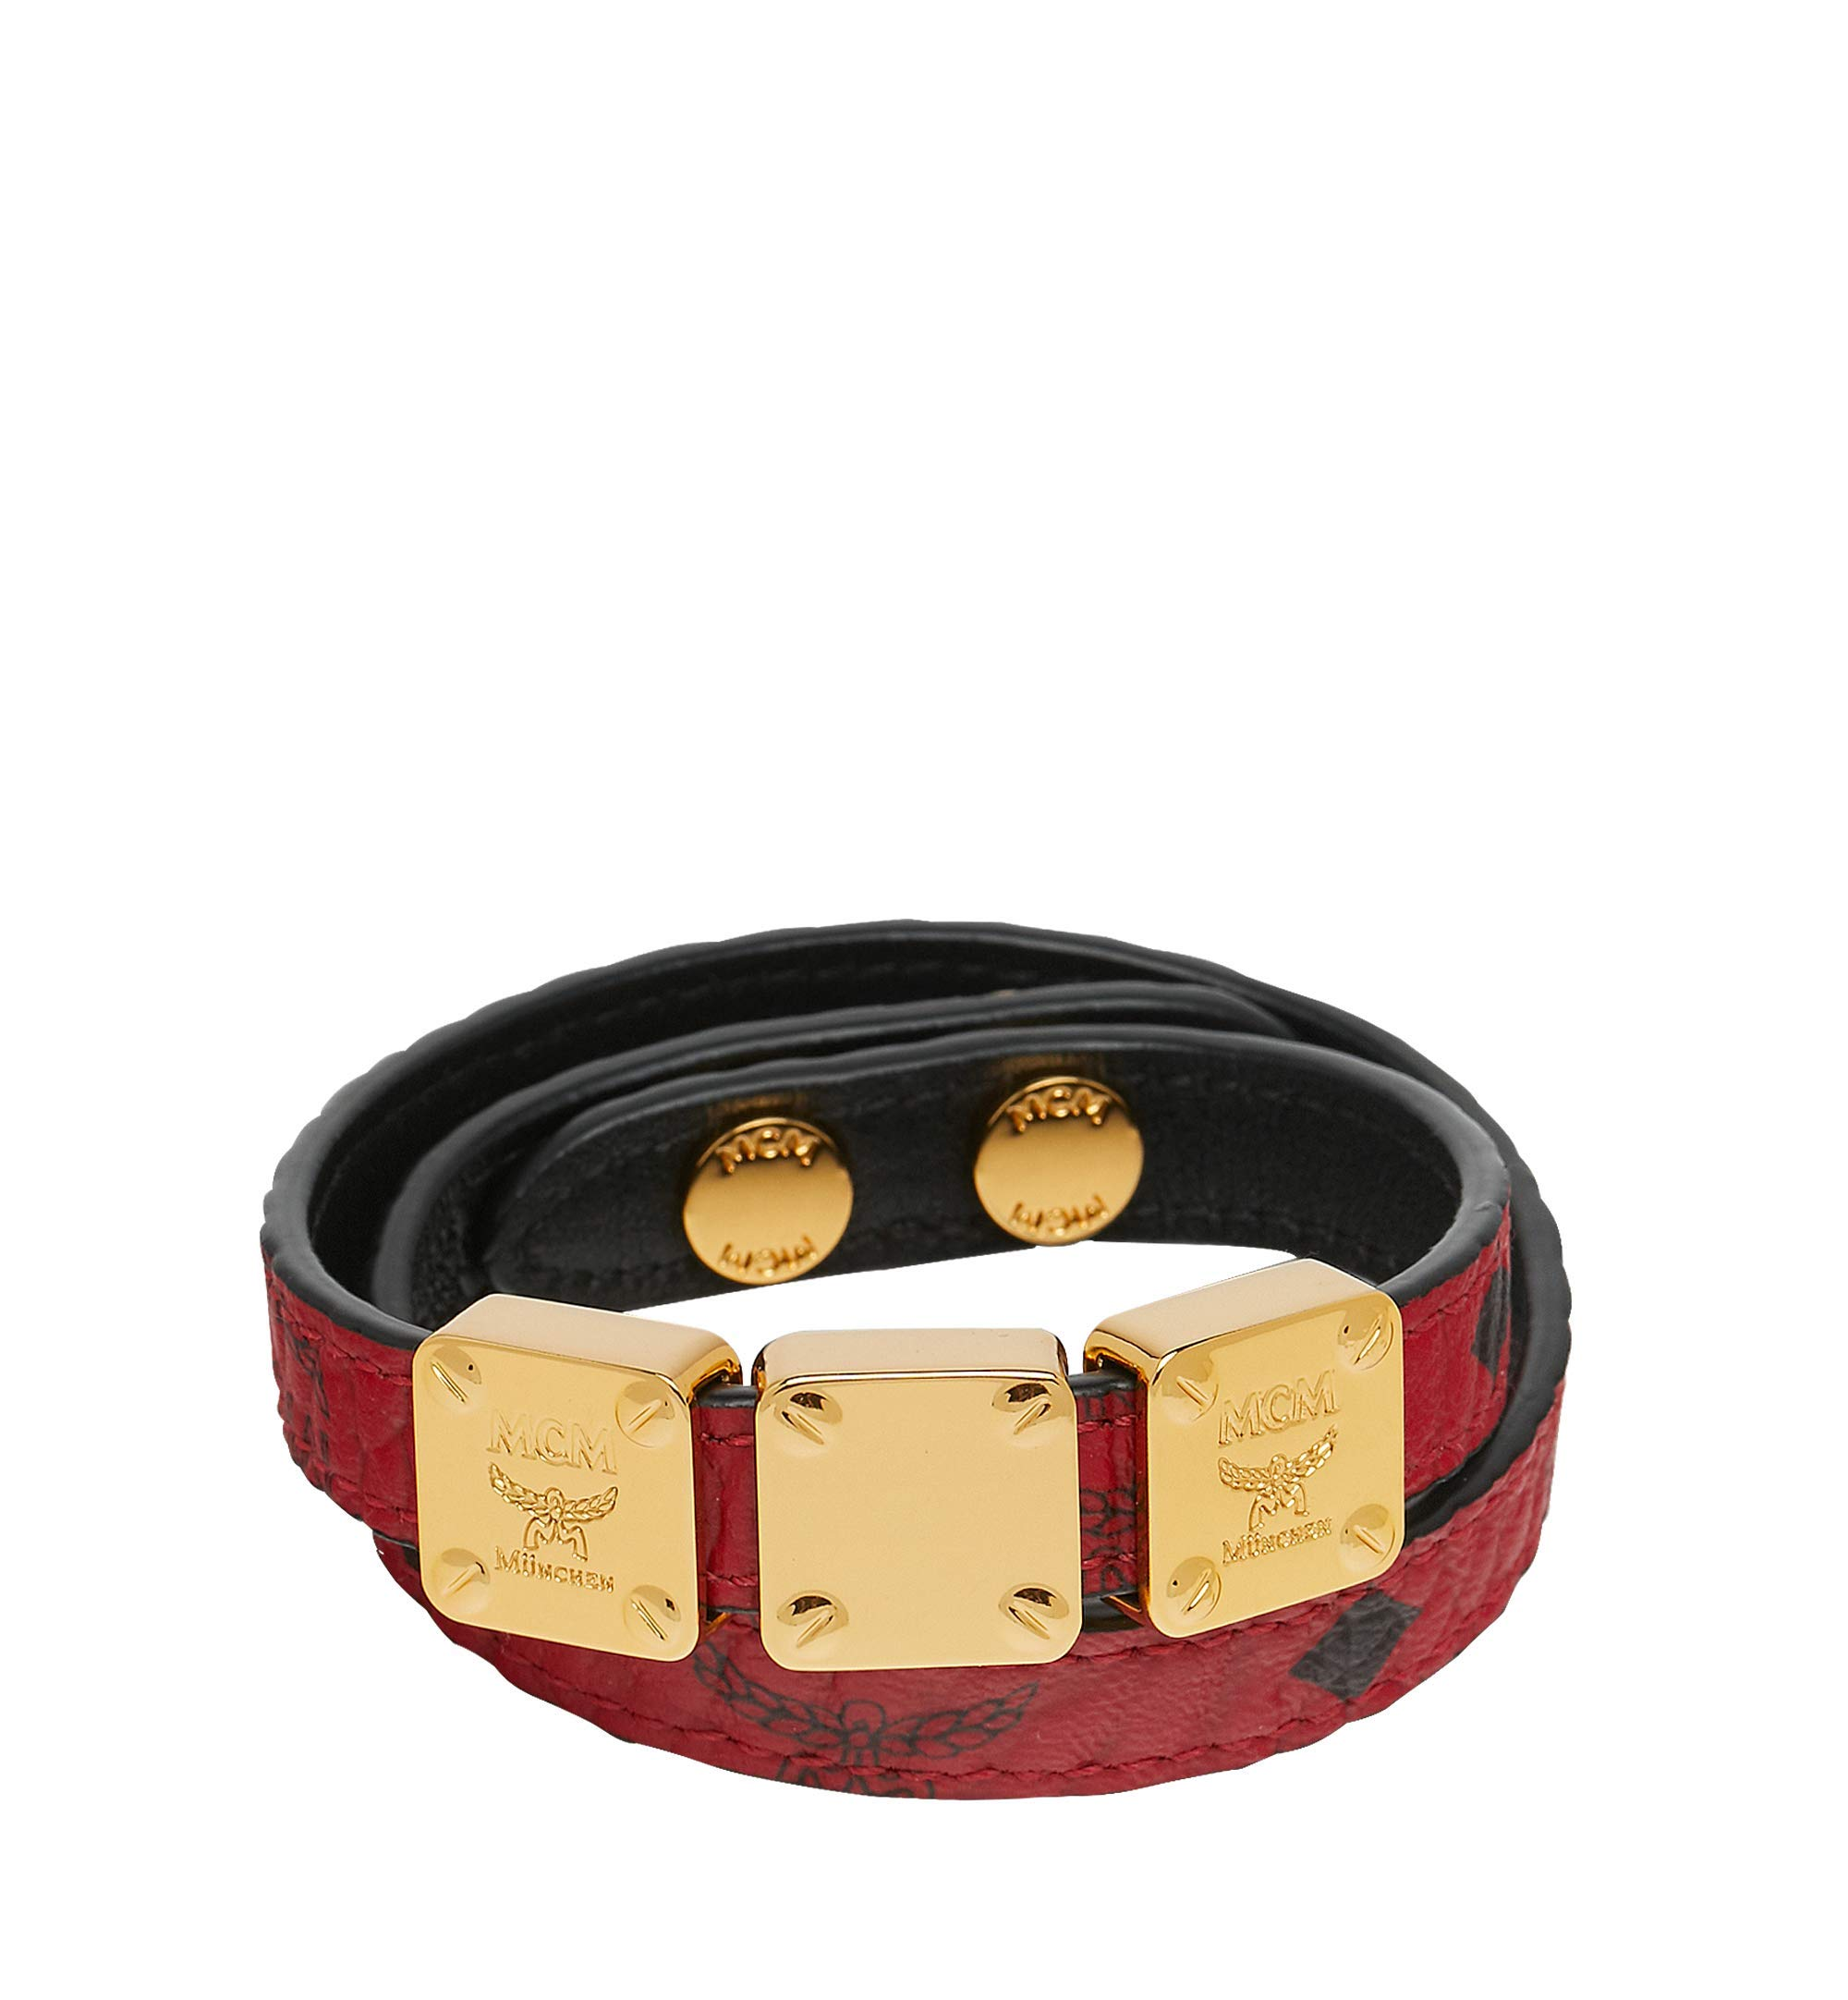 MCM Women's Project (RED) Double Bracelet, Ruby, ONE SIZE by MCM